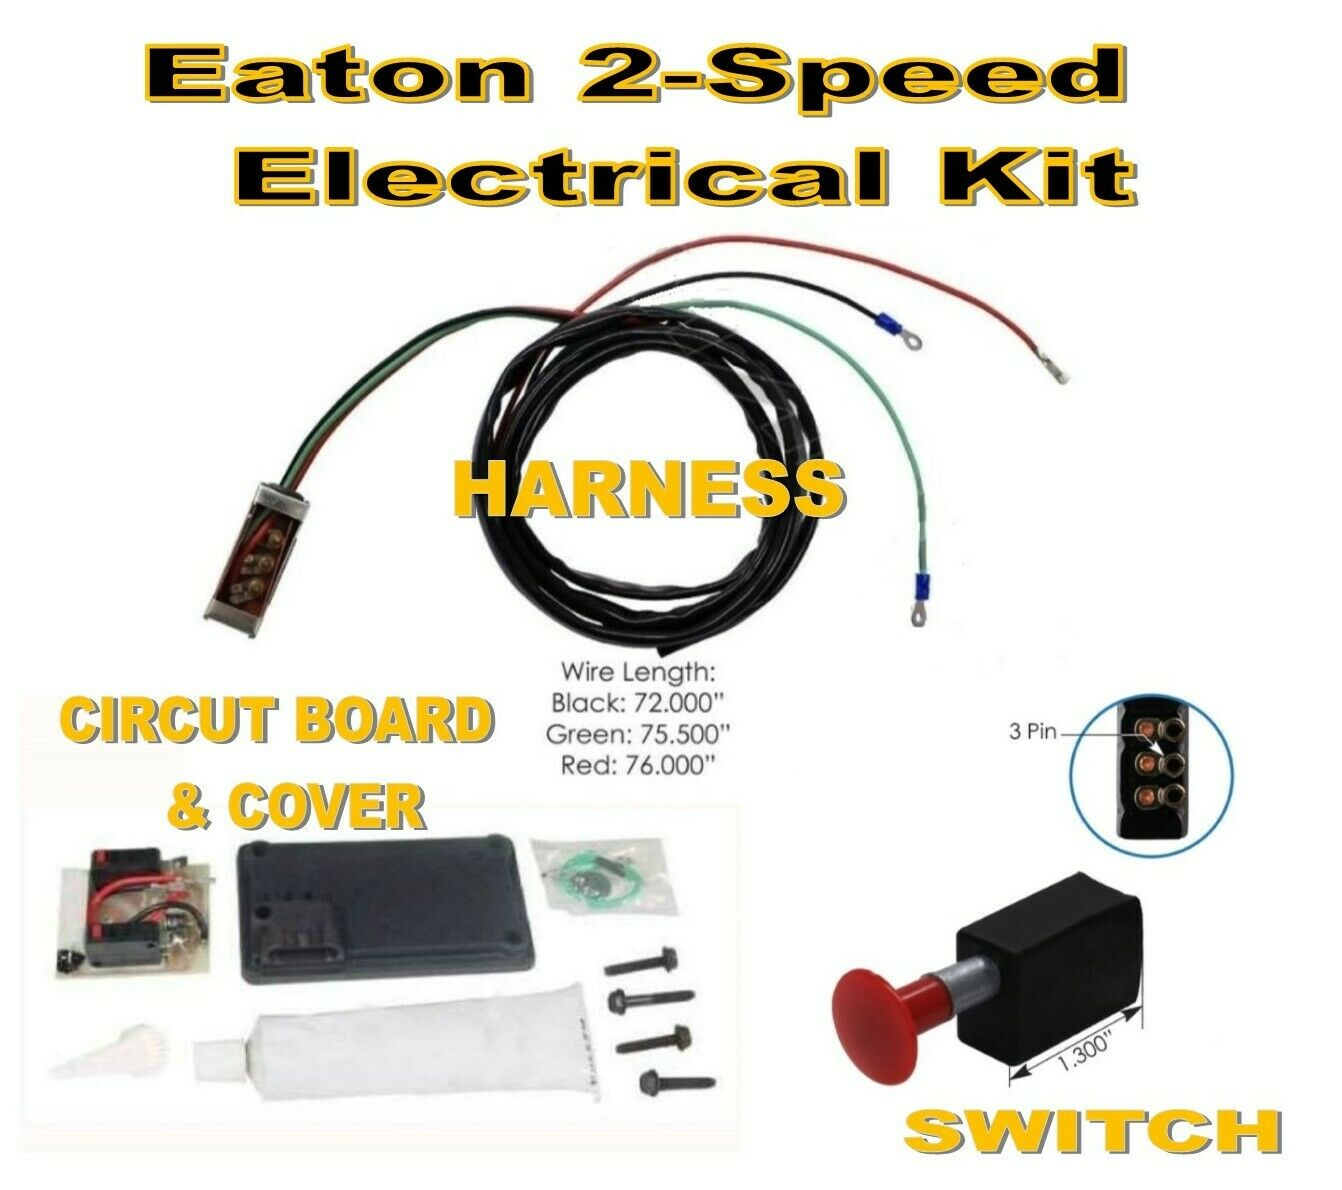 Eaton Spicer 2-Speed Electrical Kit (Circut Board - Harness - Switch)